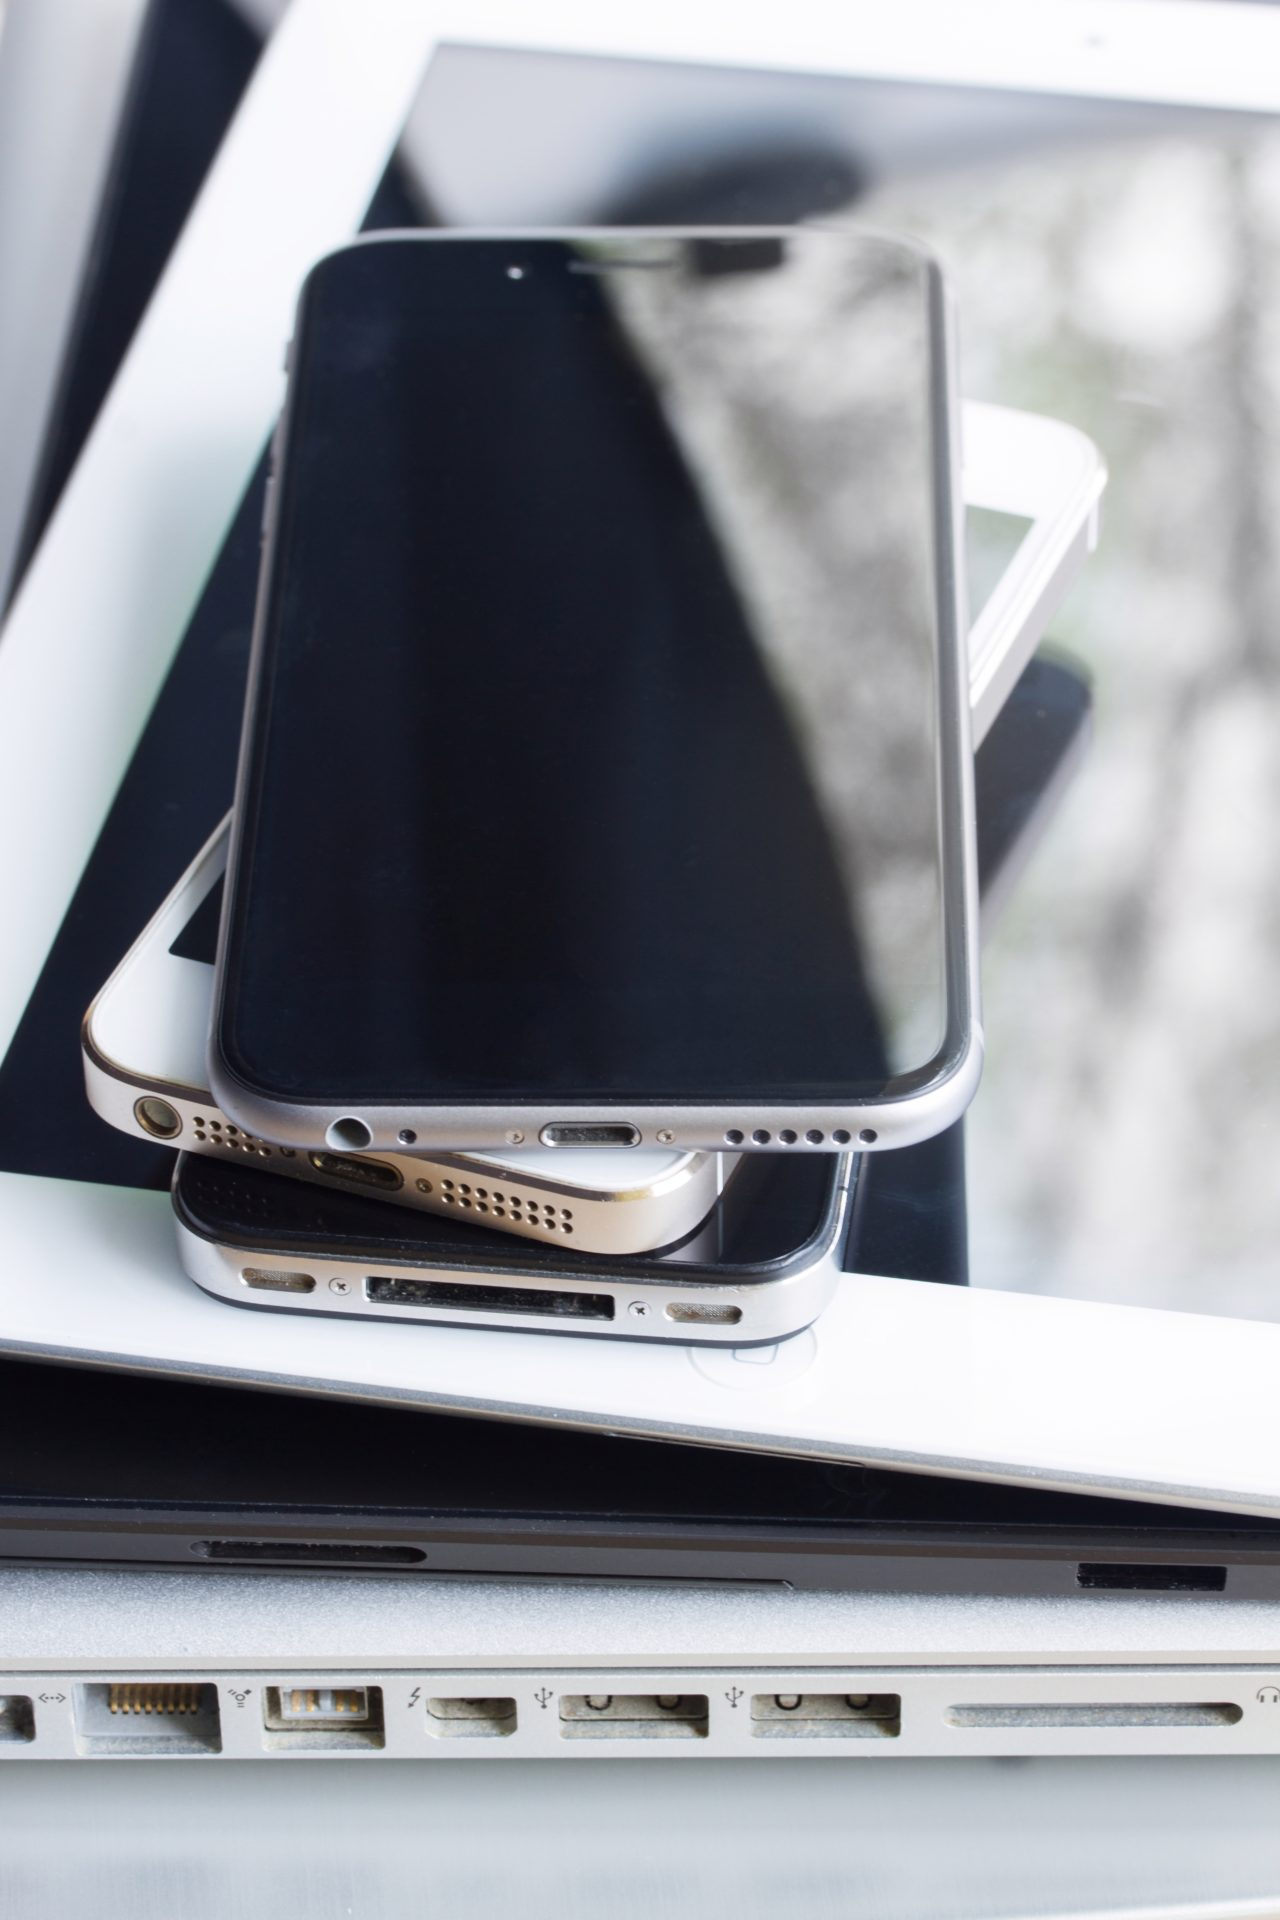 stack of modern electronical devices close up - technology concept